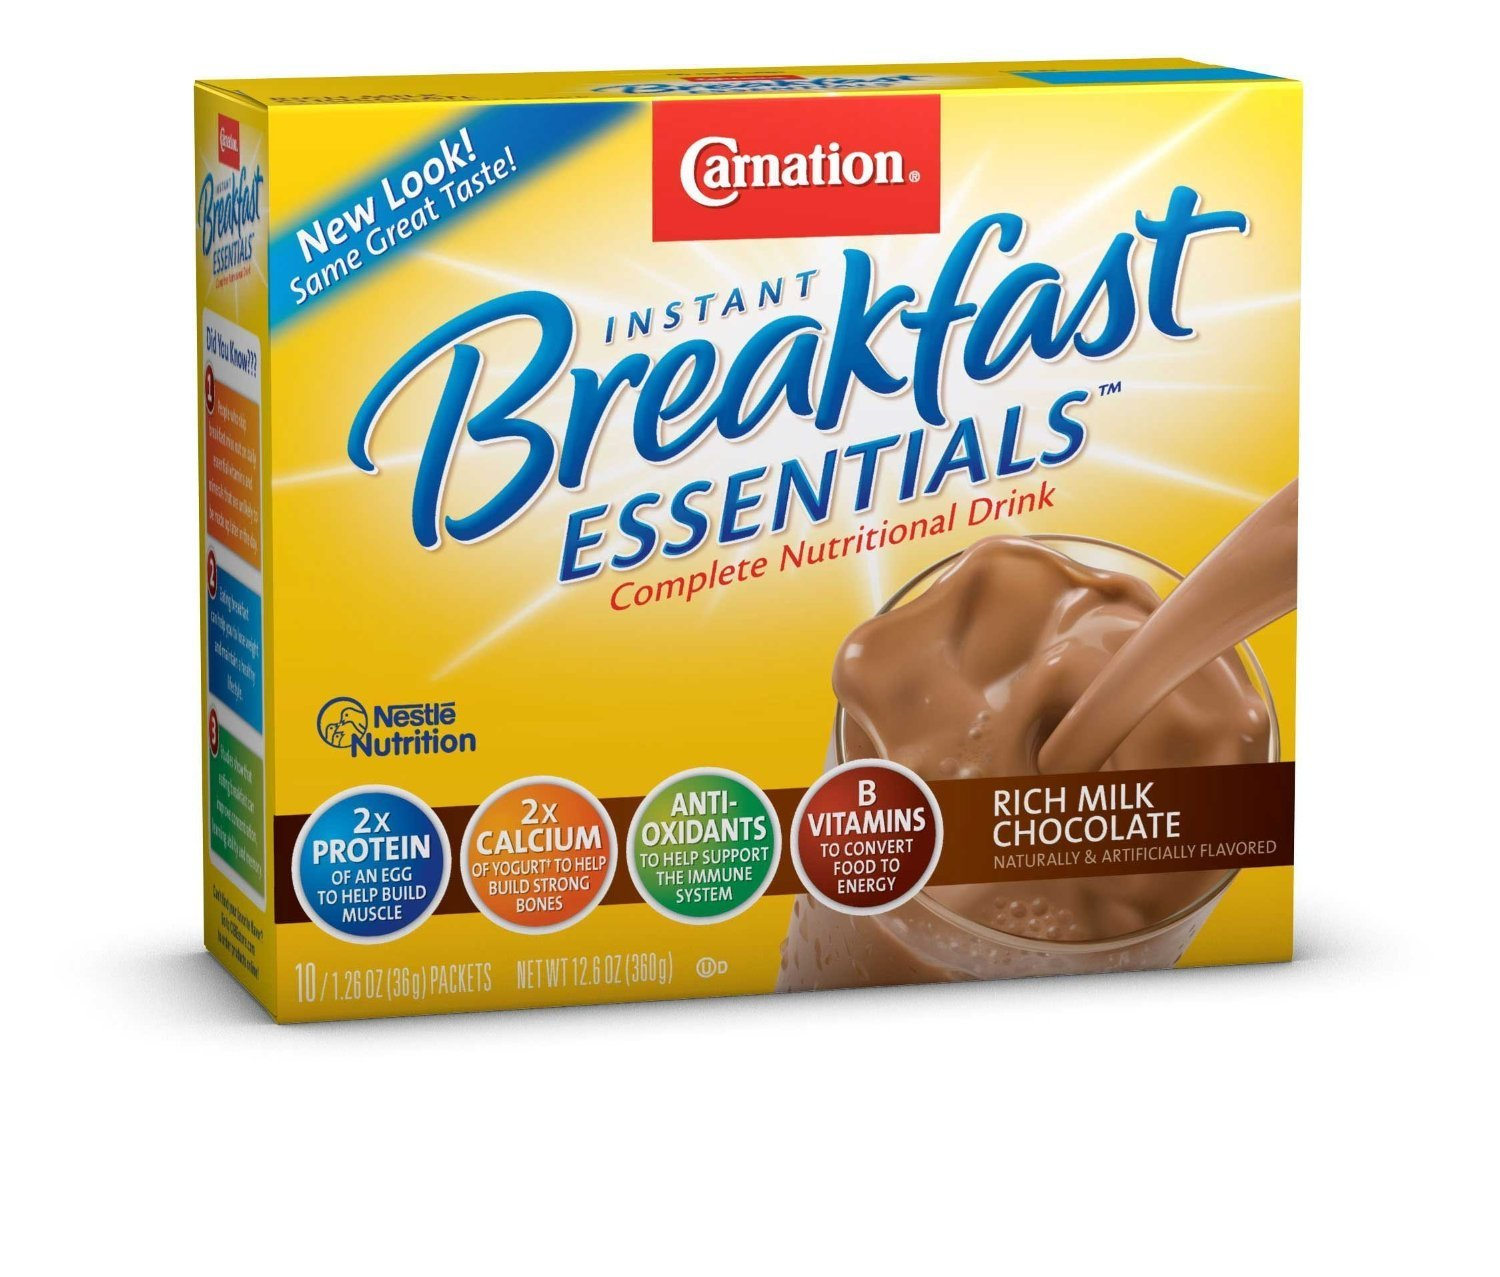 Nestle Carnation Instant Breakfast Rich Milk Chocolate 10 pk Nutritional Energy Drink 12.6 oz (Pack of 6) by Carnation Breakfast Essentials